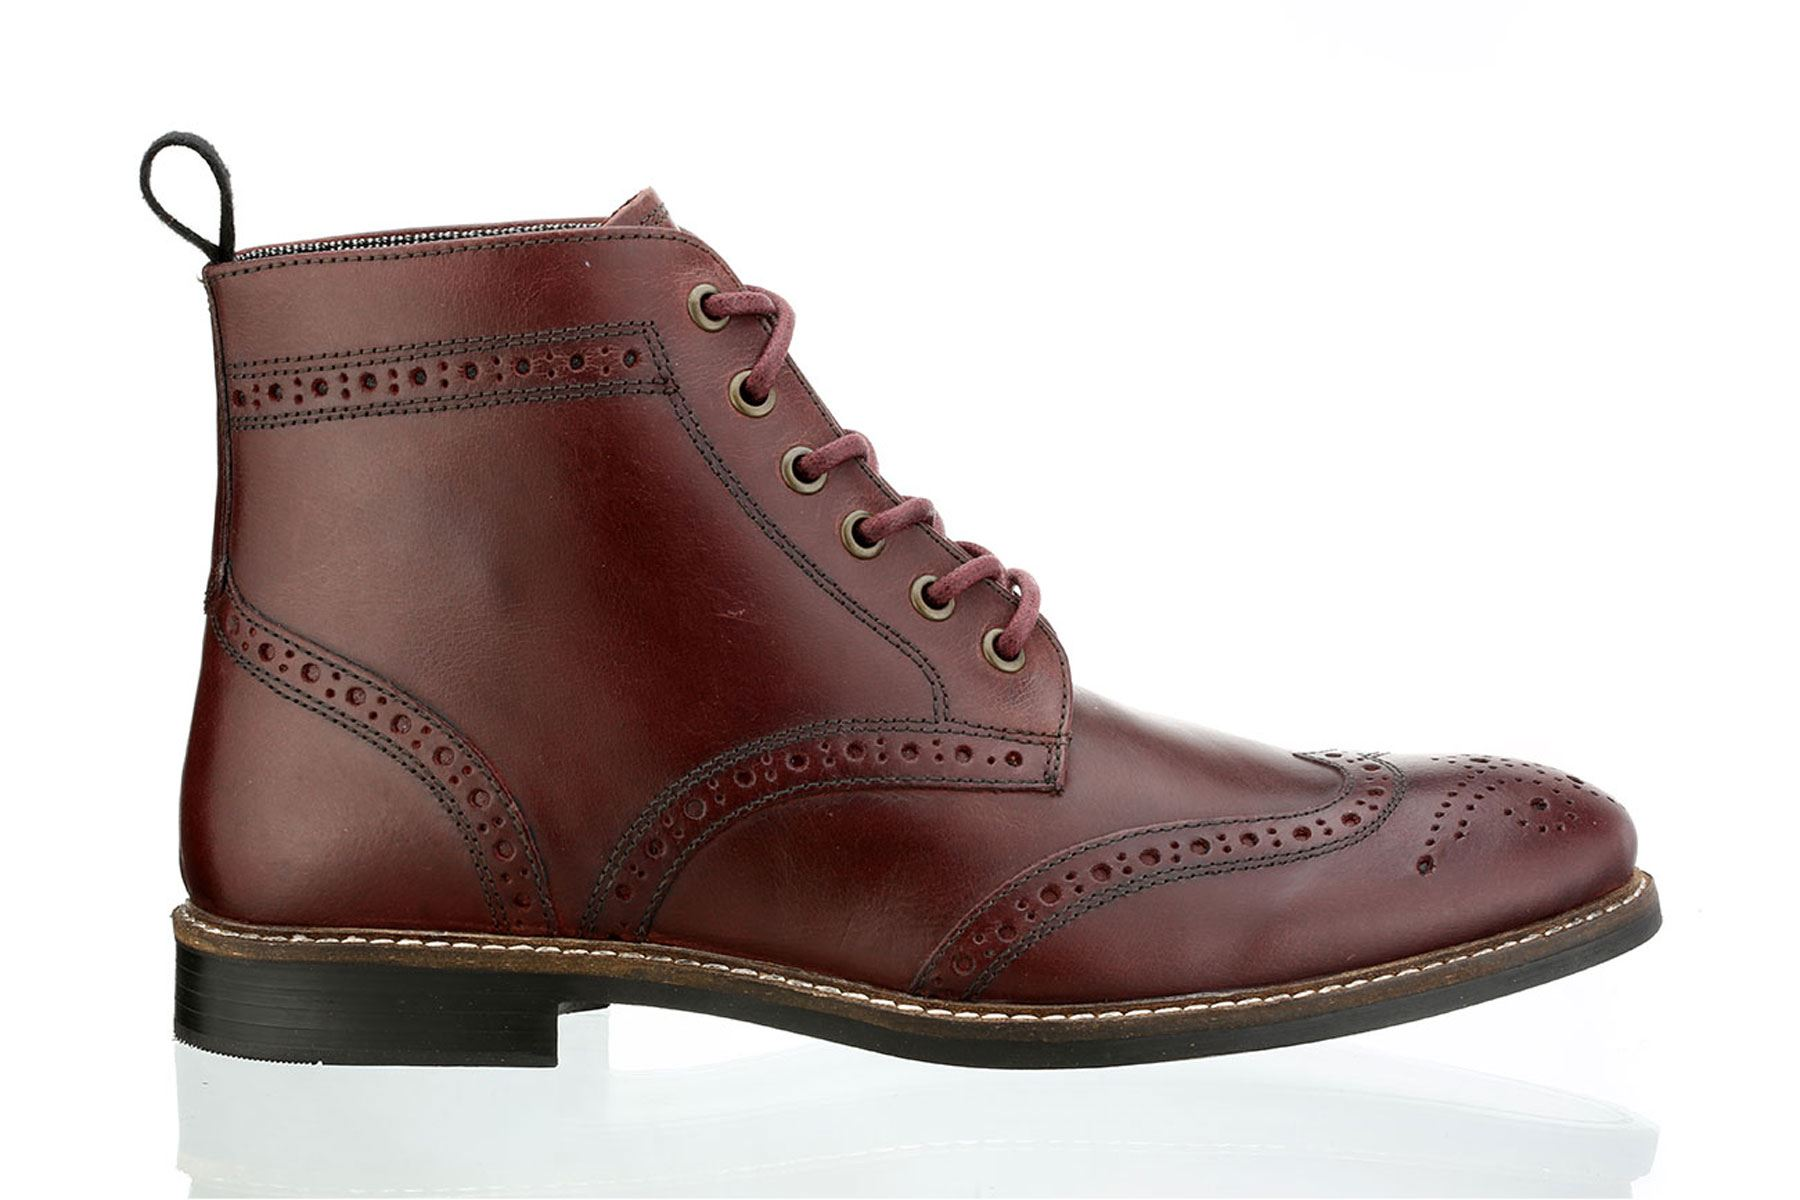 Red Tape Glaven Real Leather Upper Lace Up Brogue Mens Boots Bordo Brown  30b2680a591